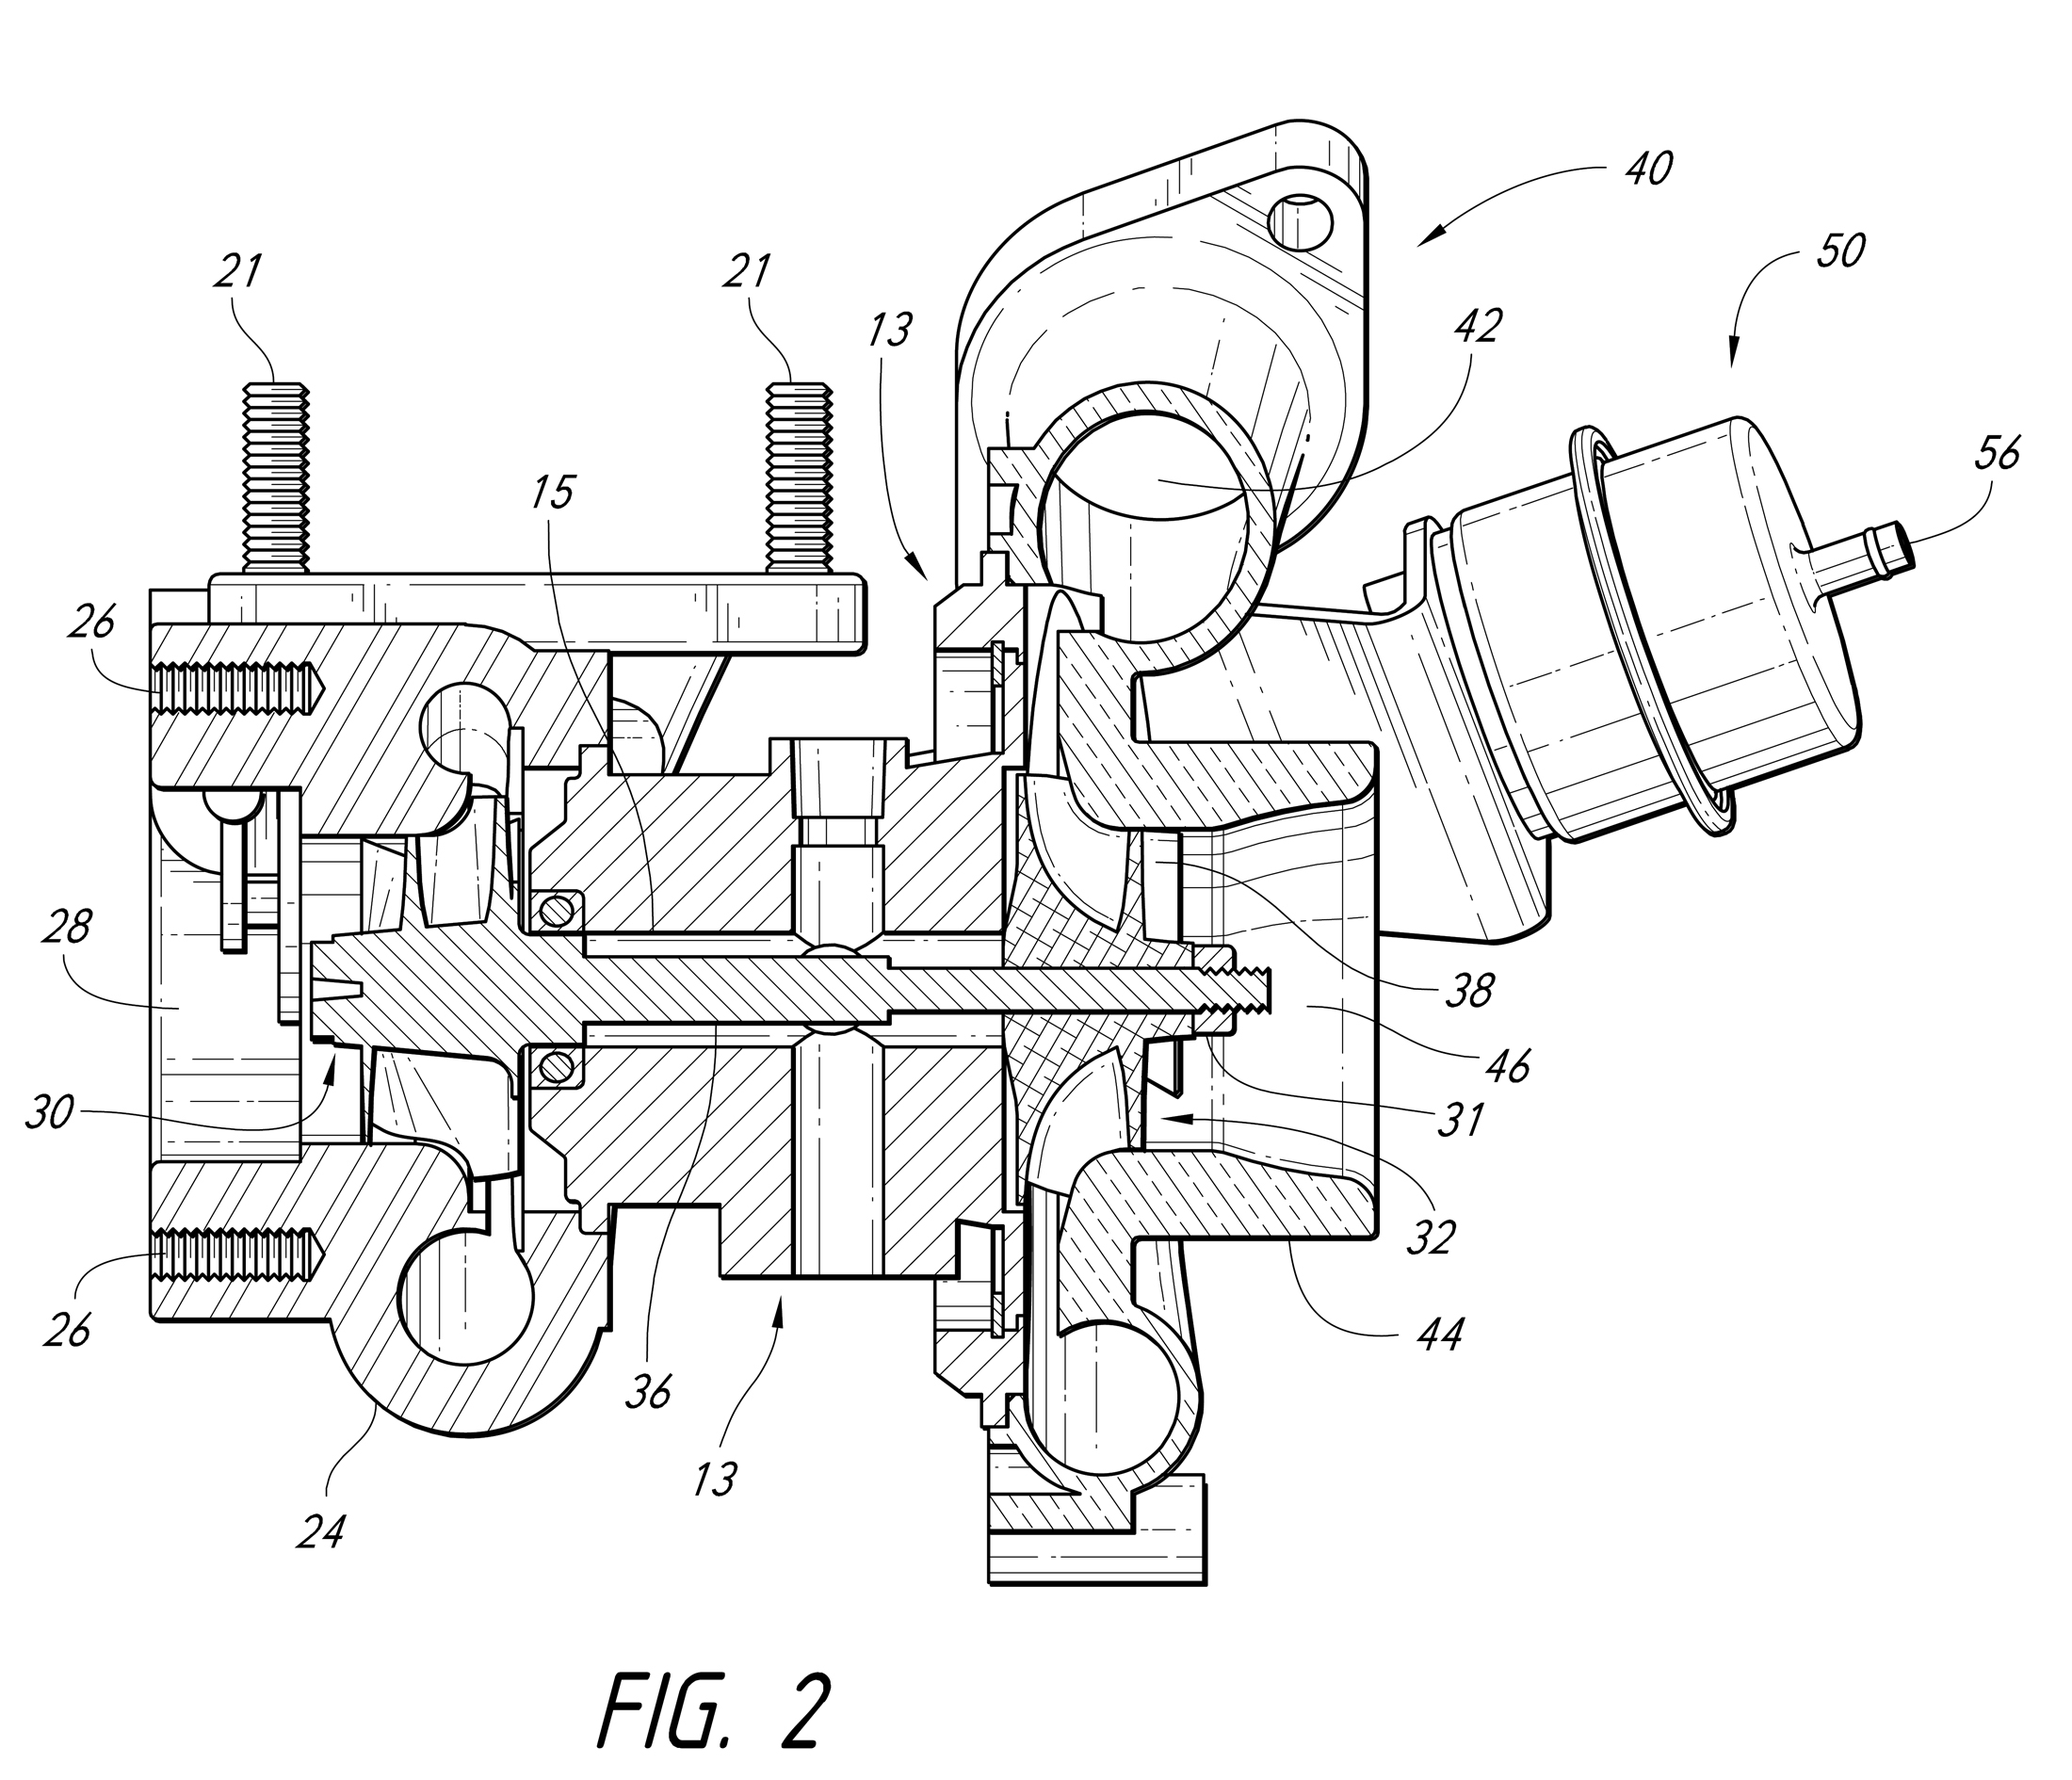 us patent office requirements for utility patent drawings